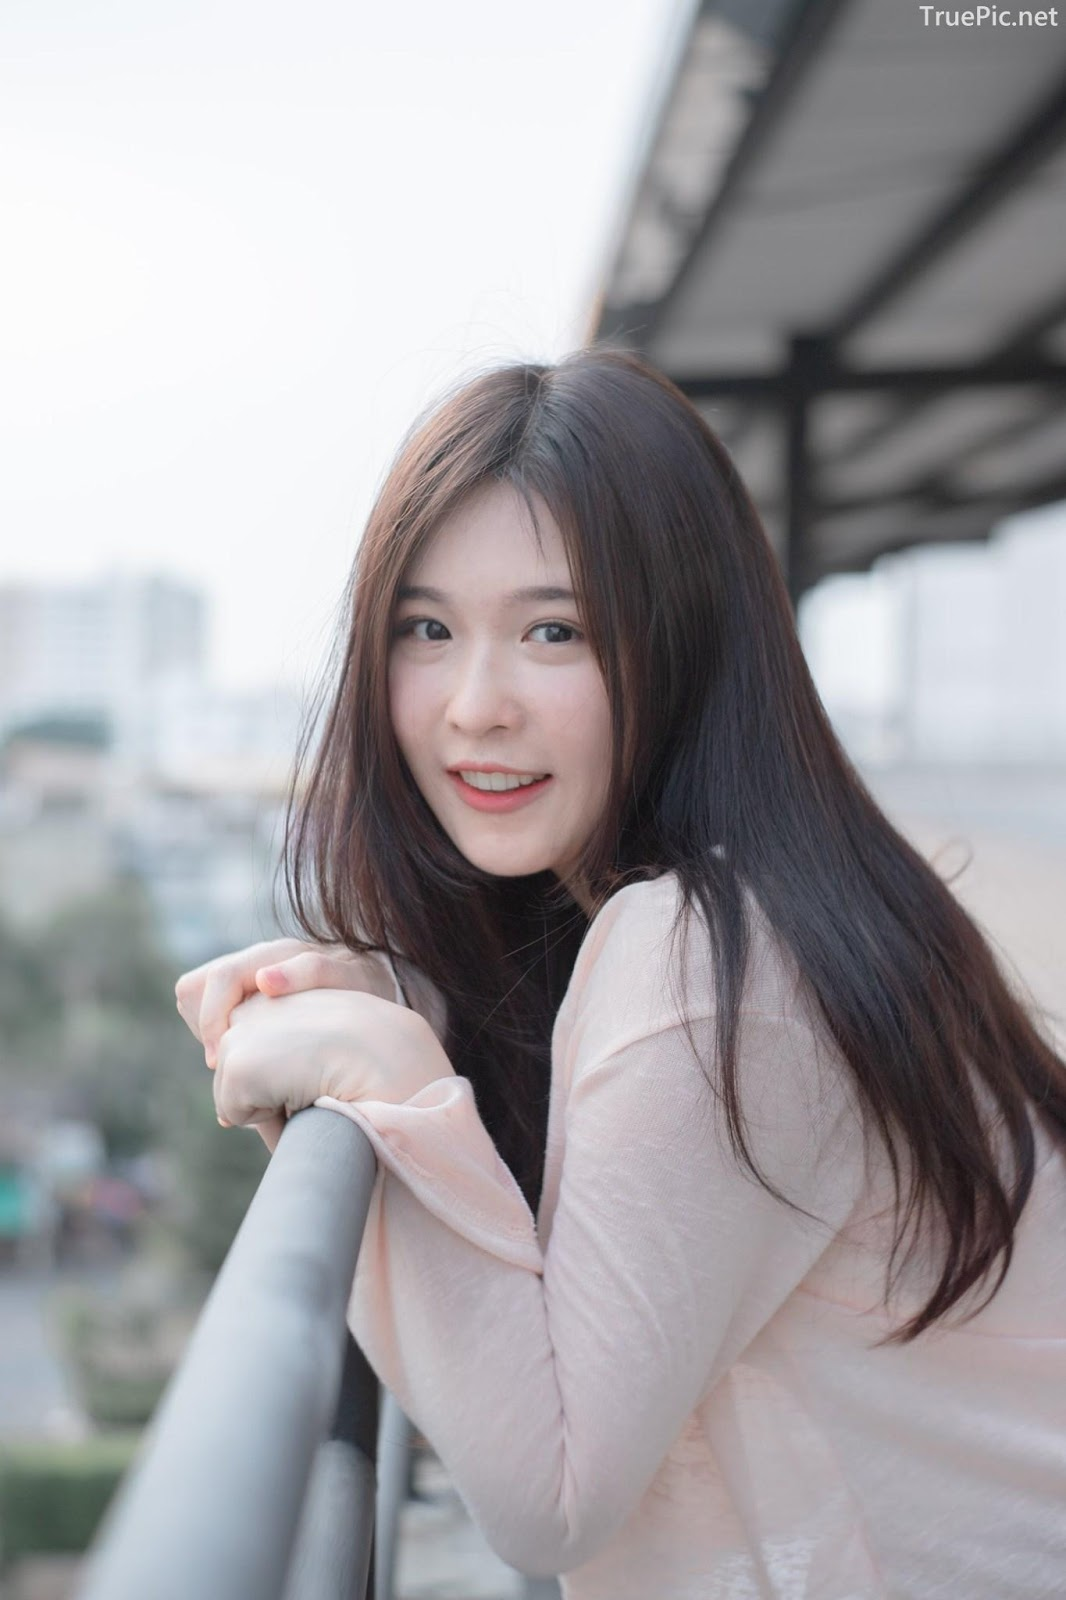 Thailand cute model Jelly Namjai (เจลลี่) - Beautiful angel in the city - Picture 10